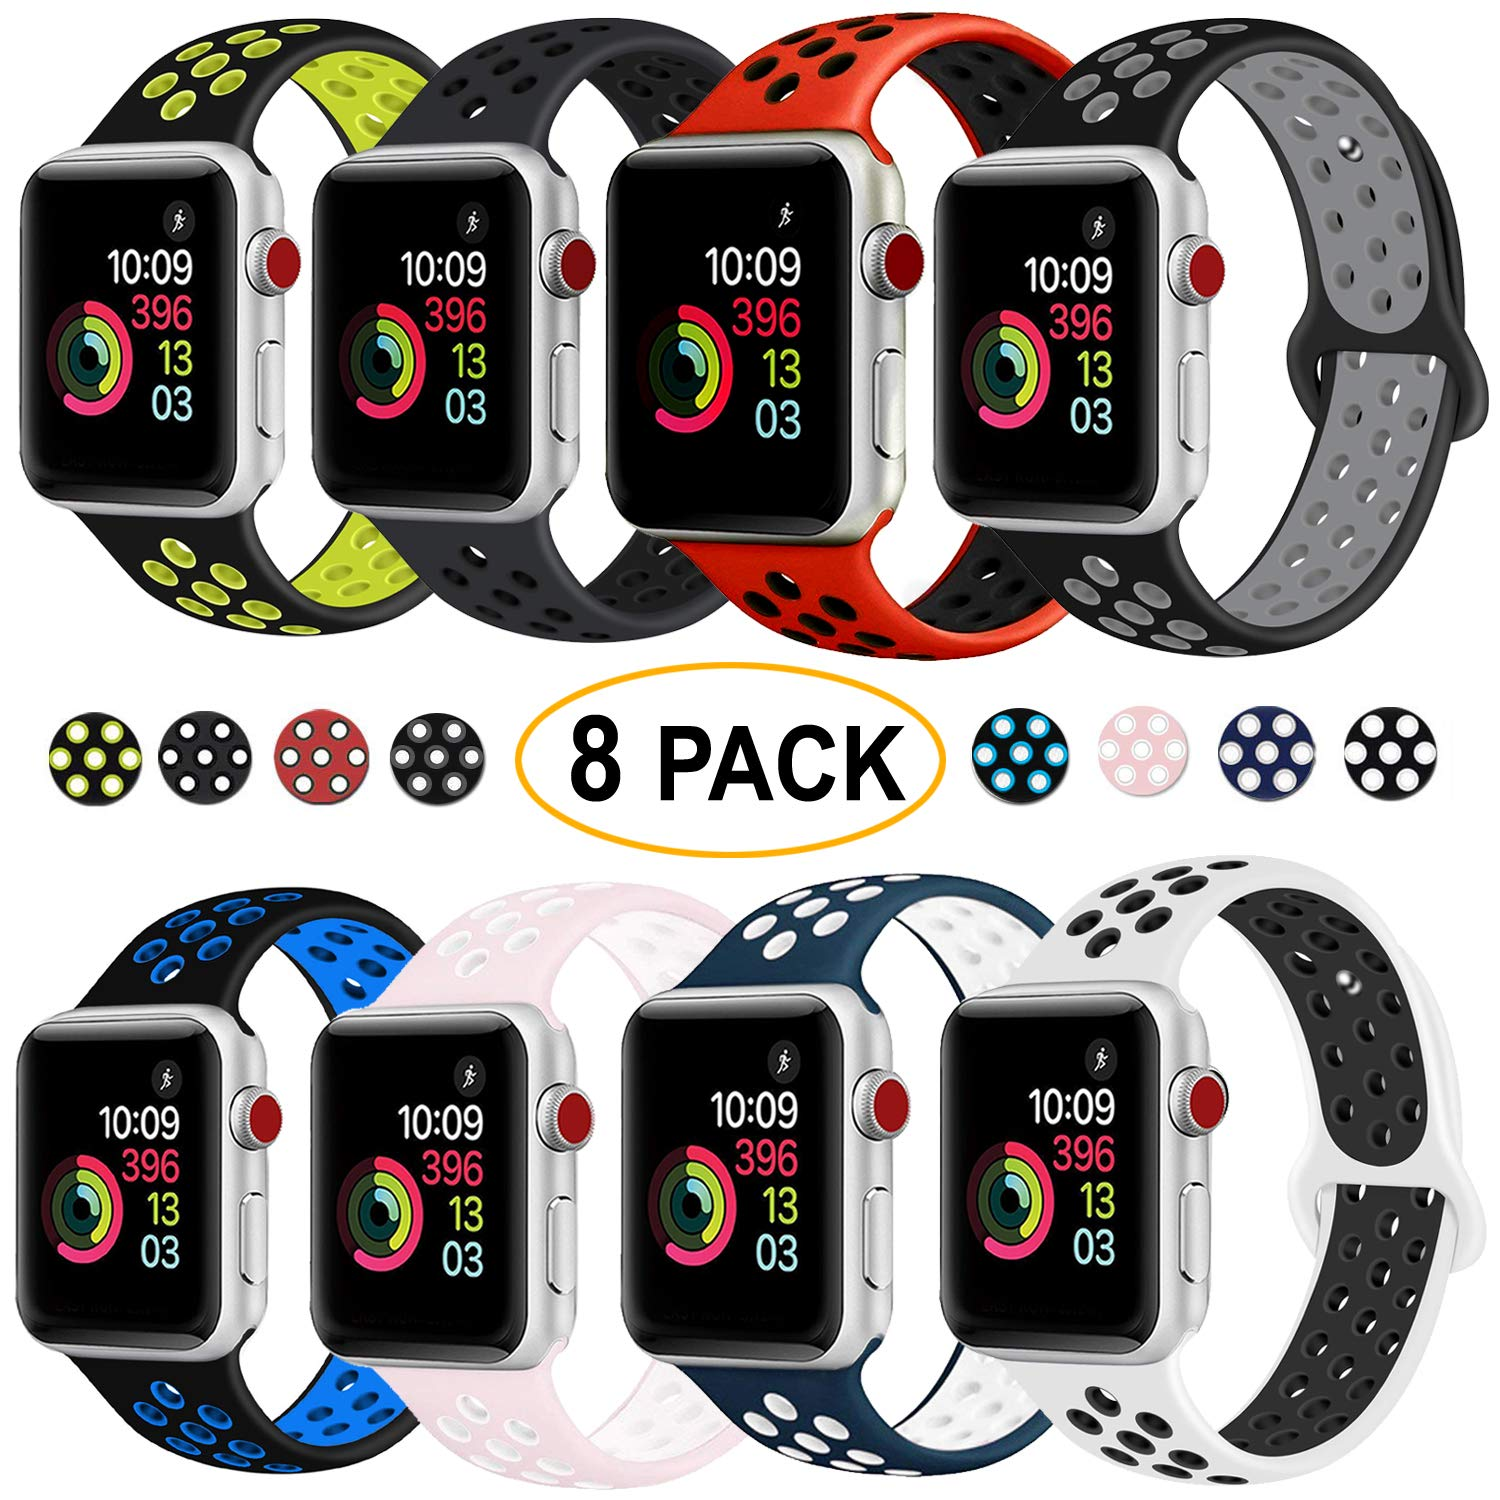 DOBSTFY Sport Band Compatible for iWatch Band 38mm 40mm 42mm 44mm, Soft Silicone Sports Band Replacement Nike Watch Bands Compatible for 2018 iWatch Series 4 3 2 1, Men/Women, 42 44mm M/L - 8 Pack